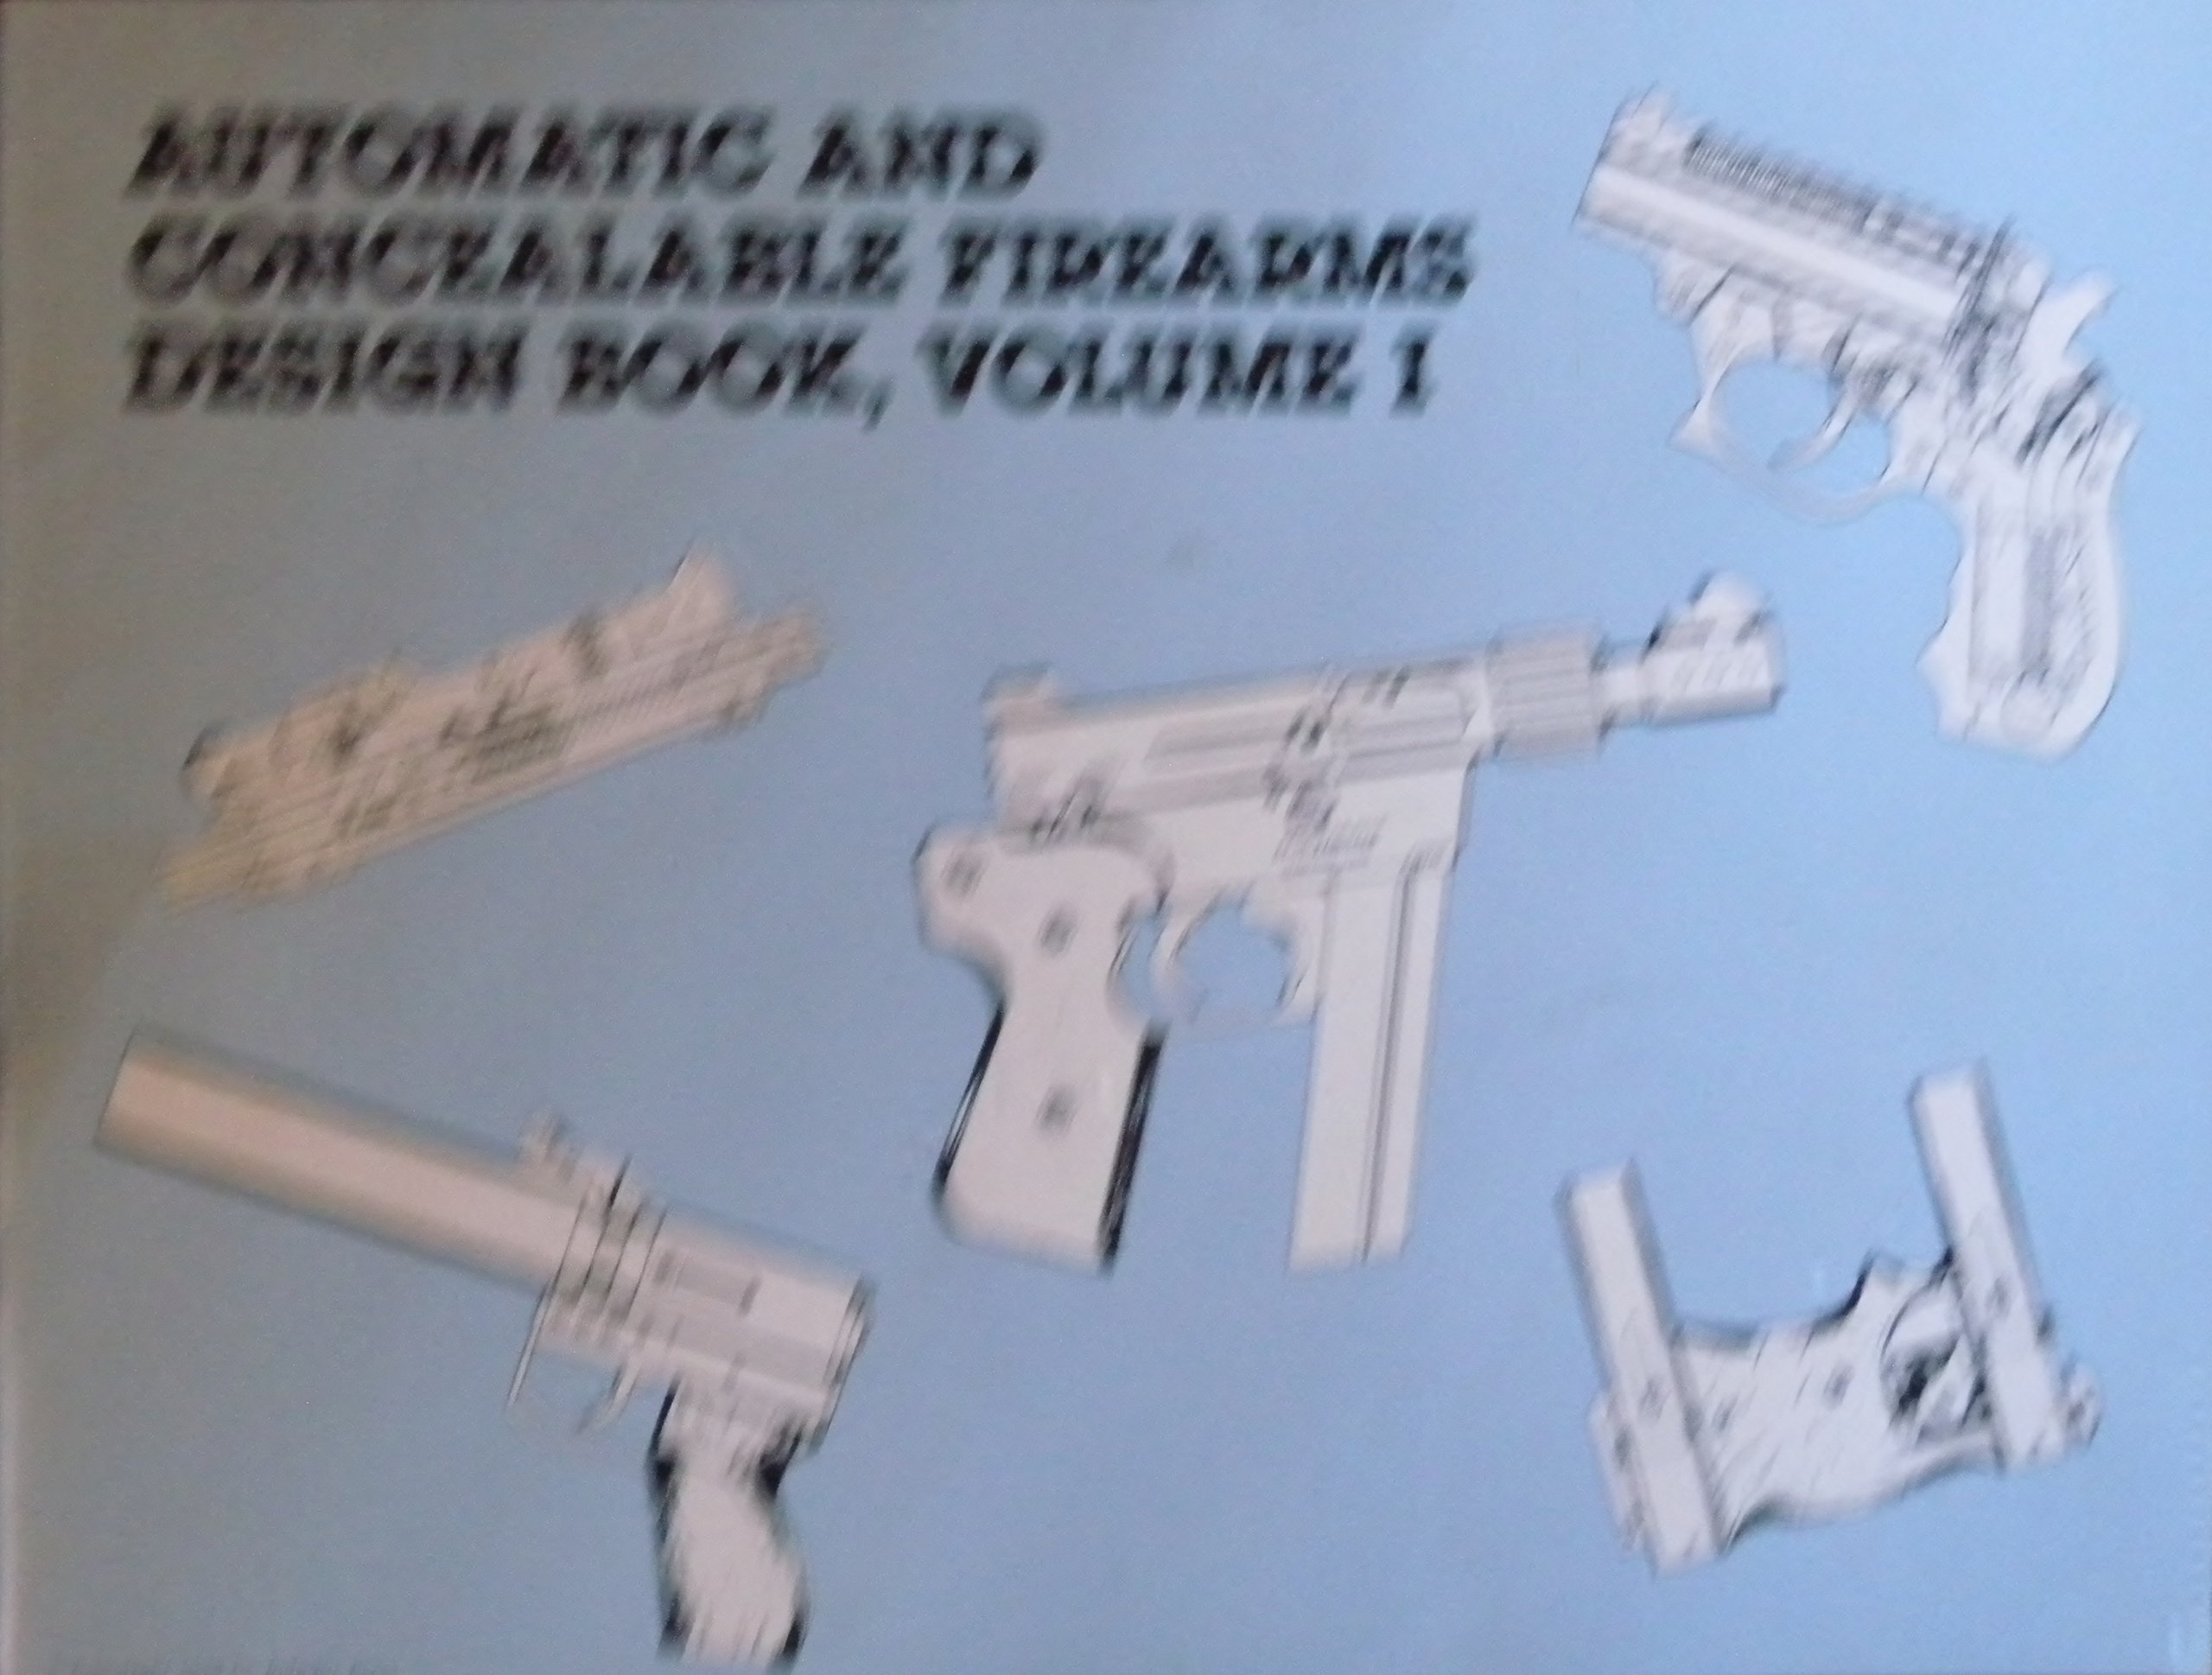 Automatic and Concealable Firearms Design Book